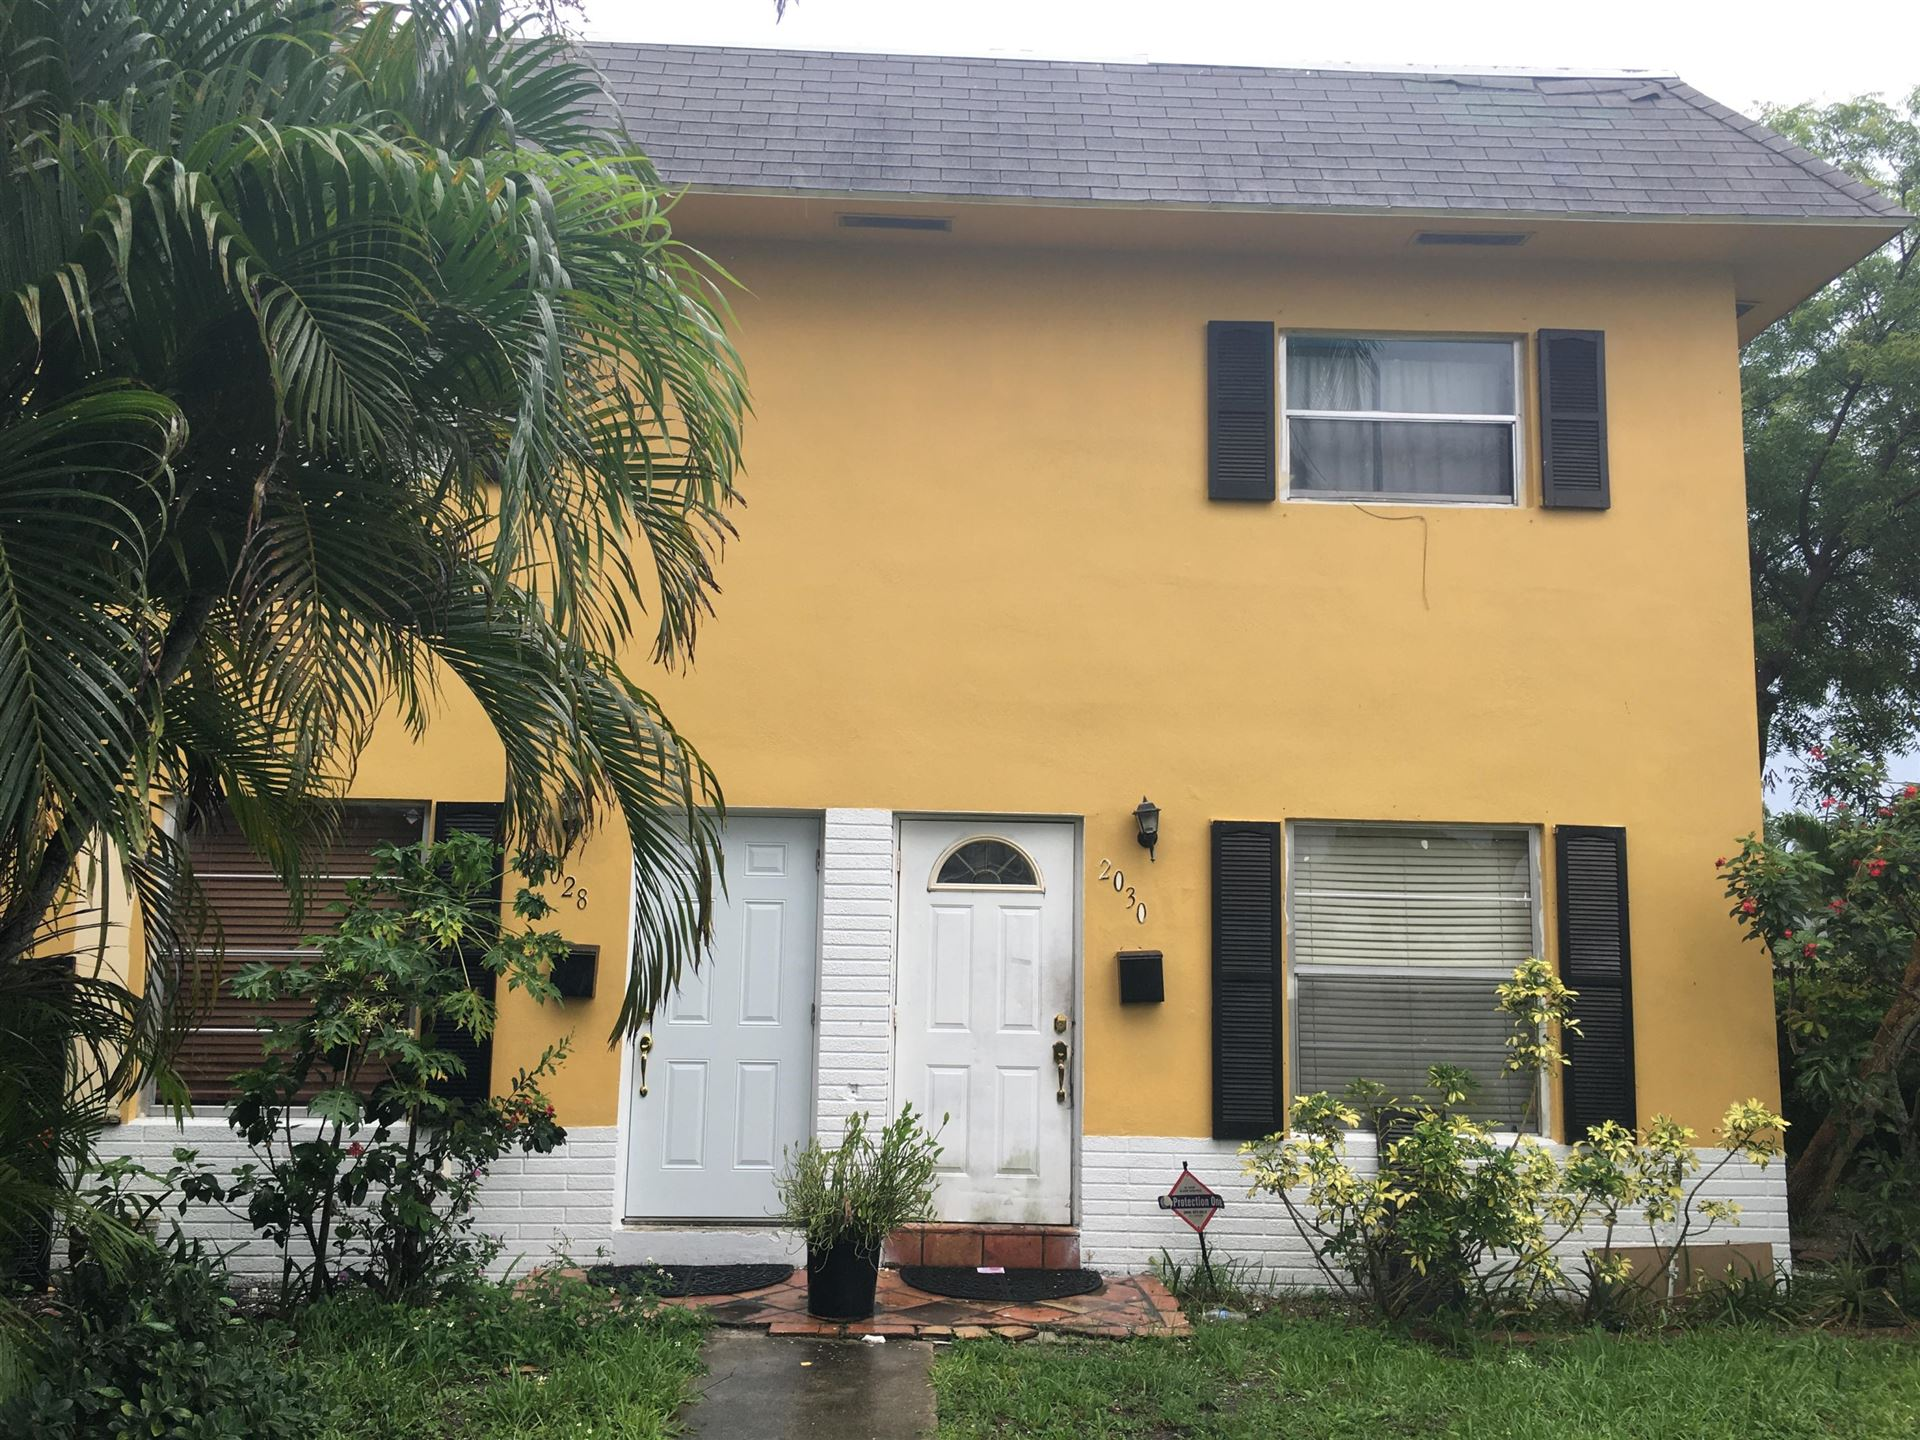 2028-2030 Dock Street, West Palm Beach, FL 33401 - #: RX-10627762